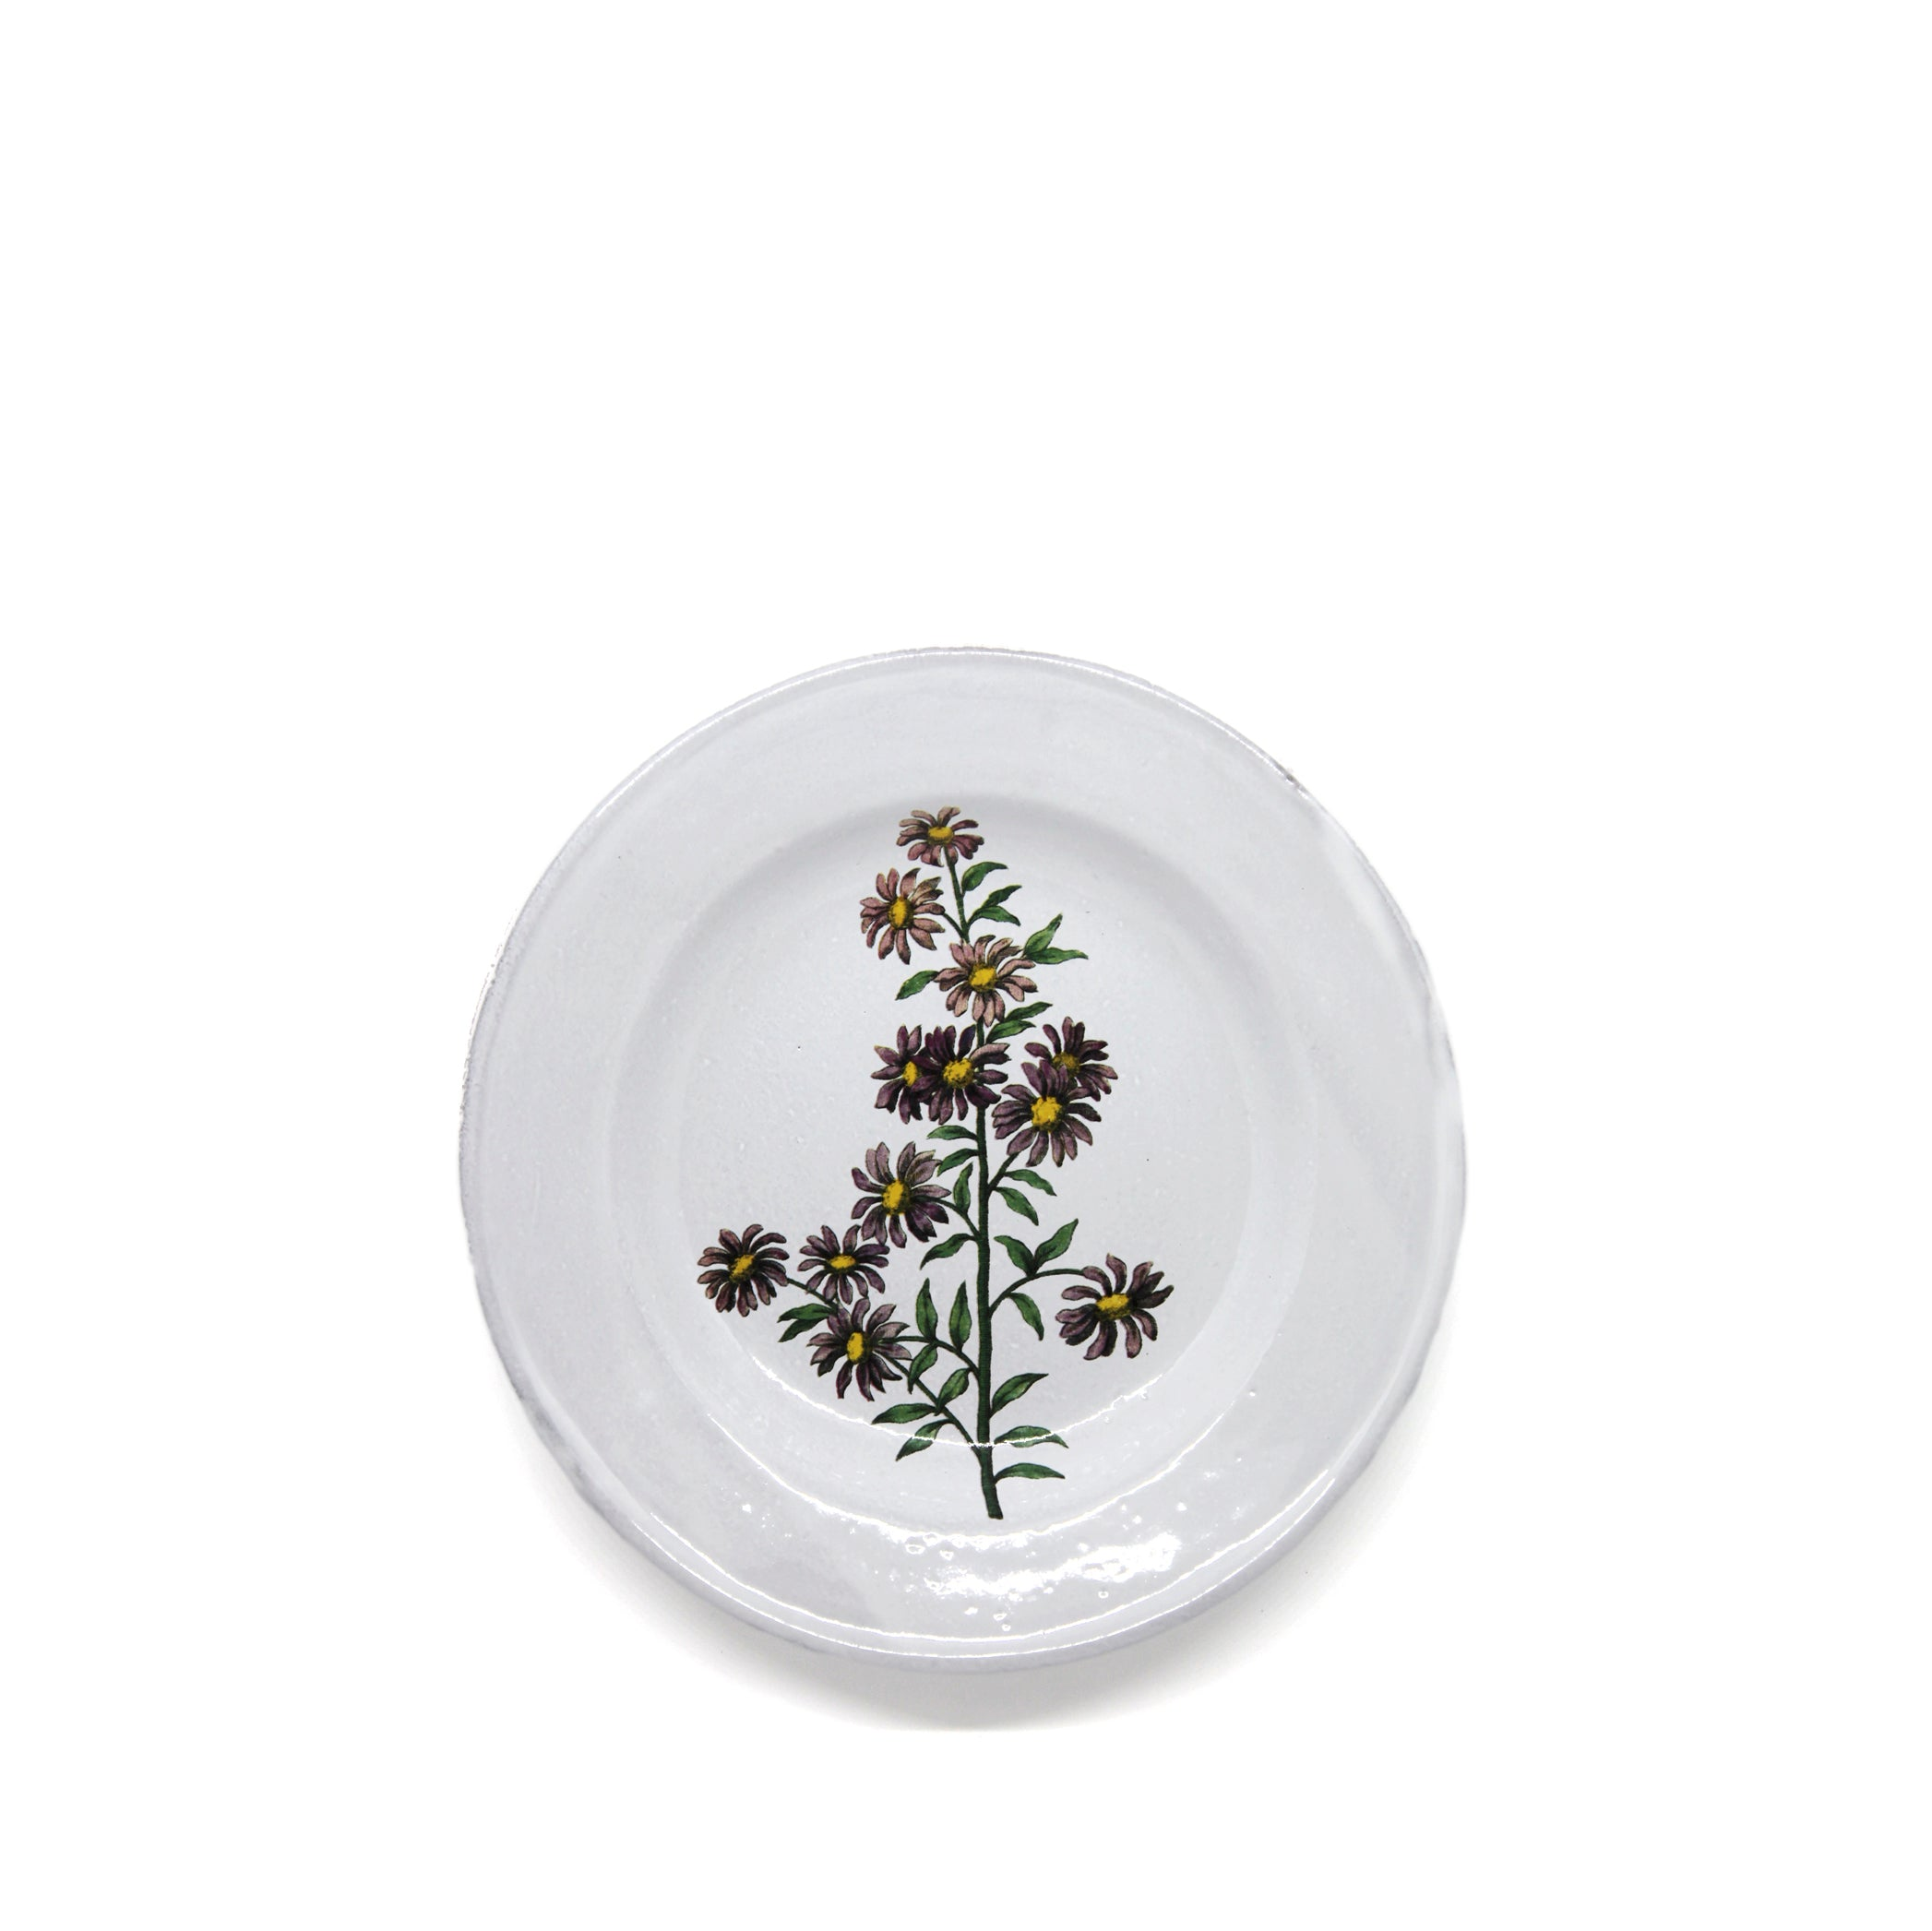 Carolina Star Flower Plate by Astier de Villatte